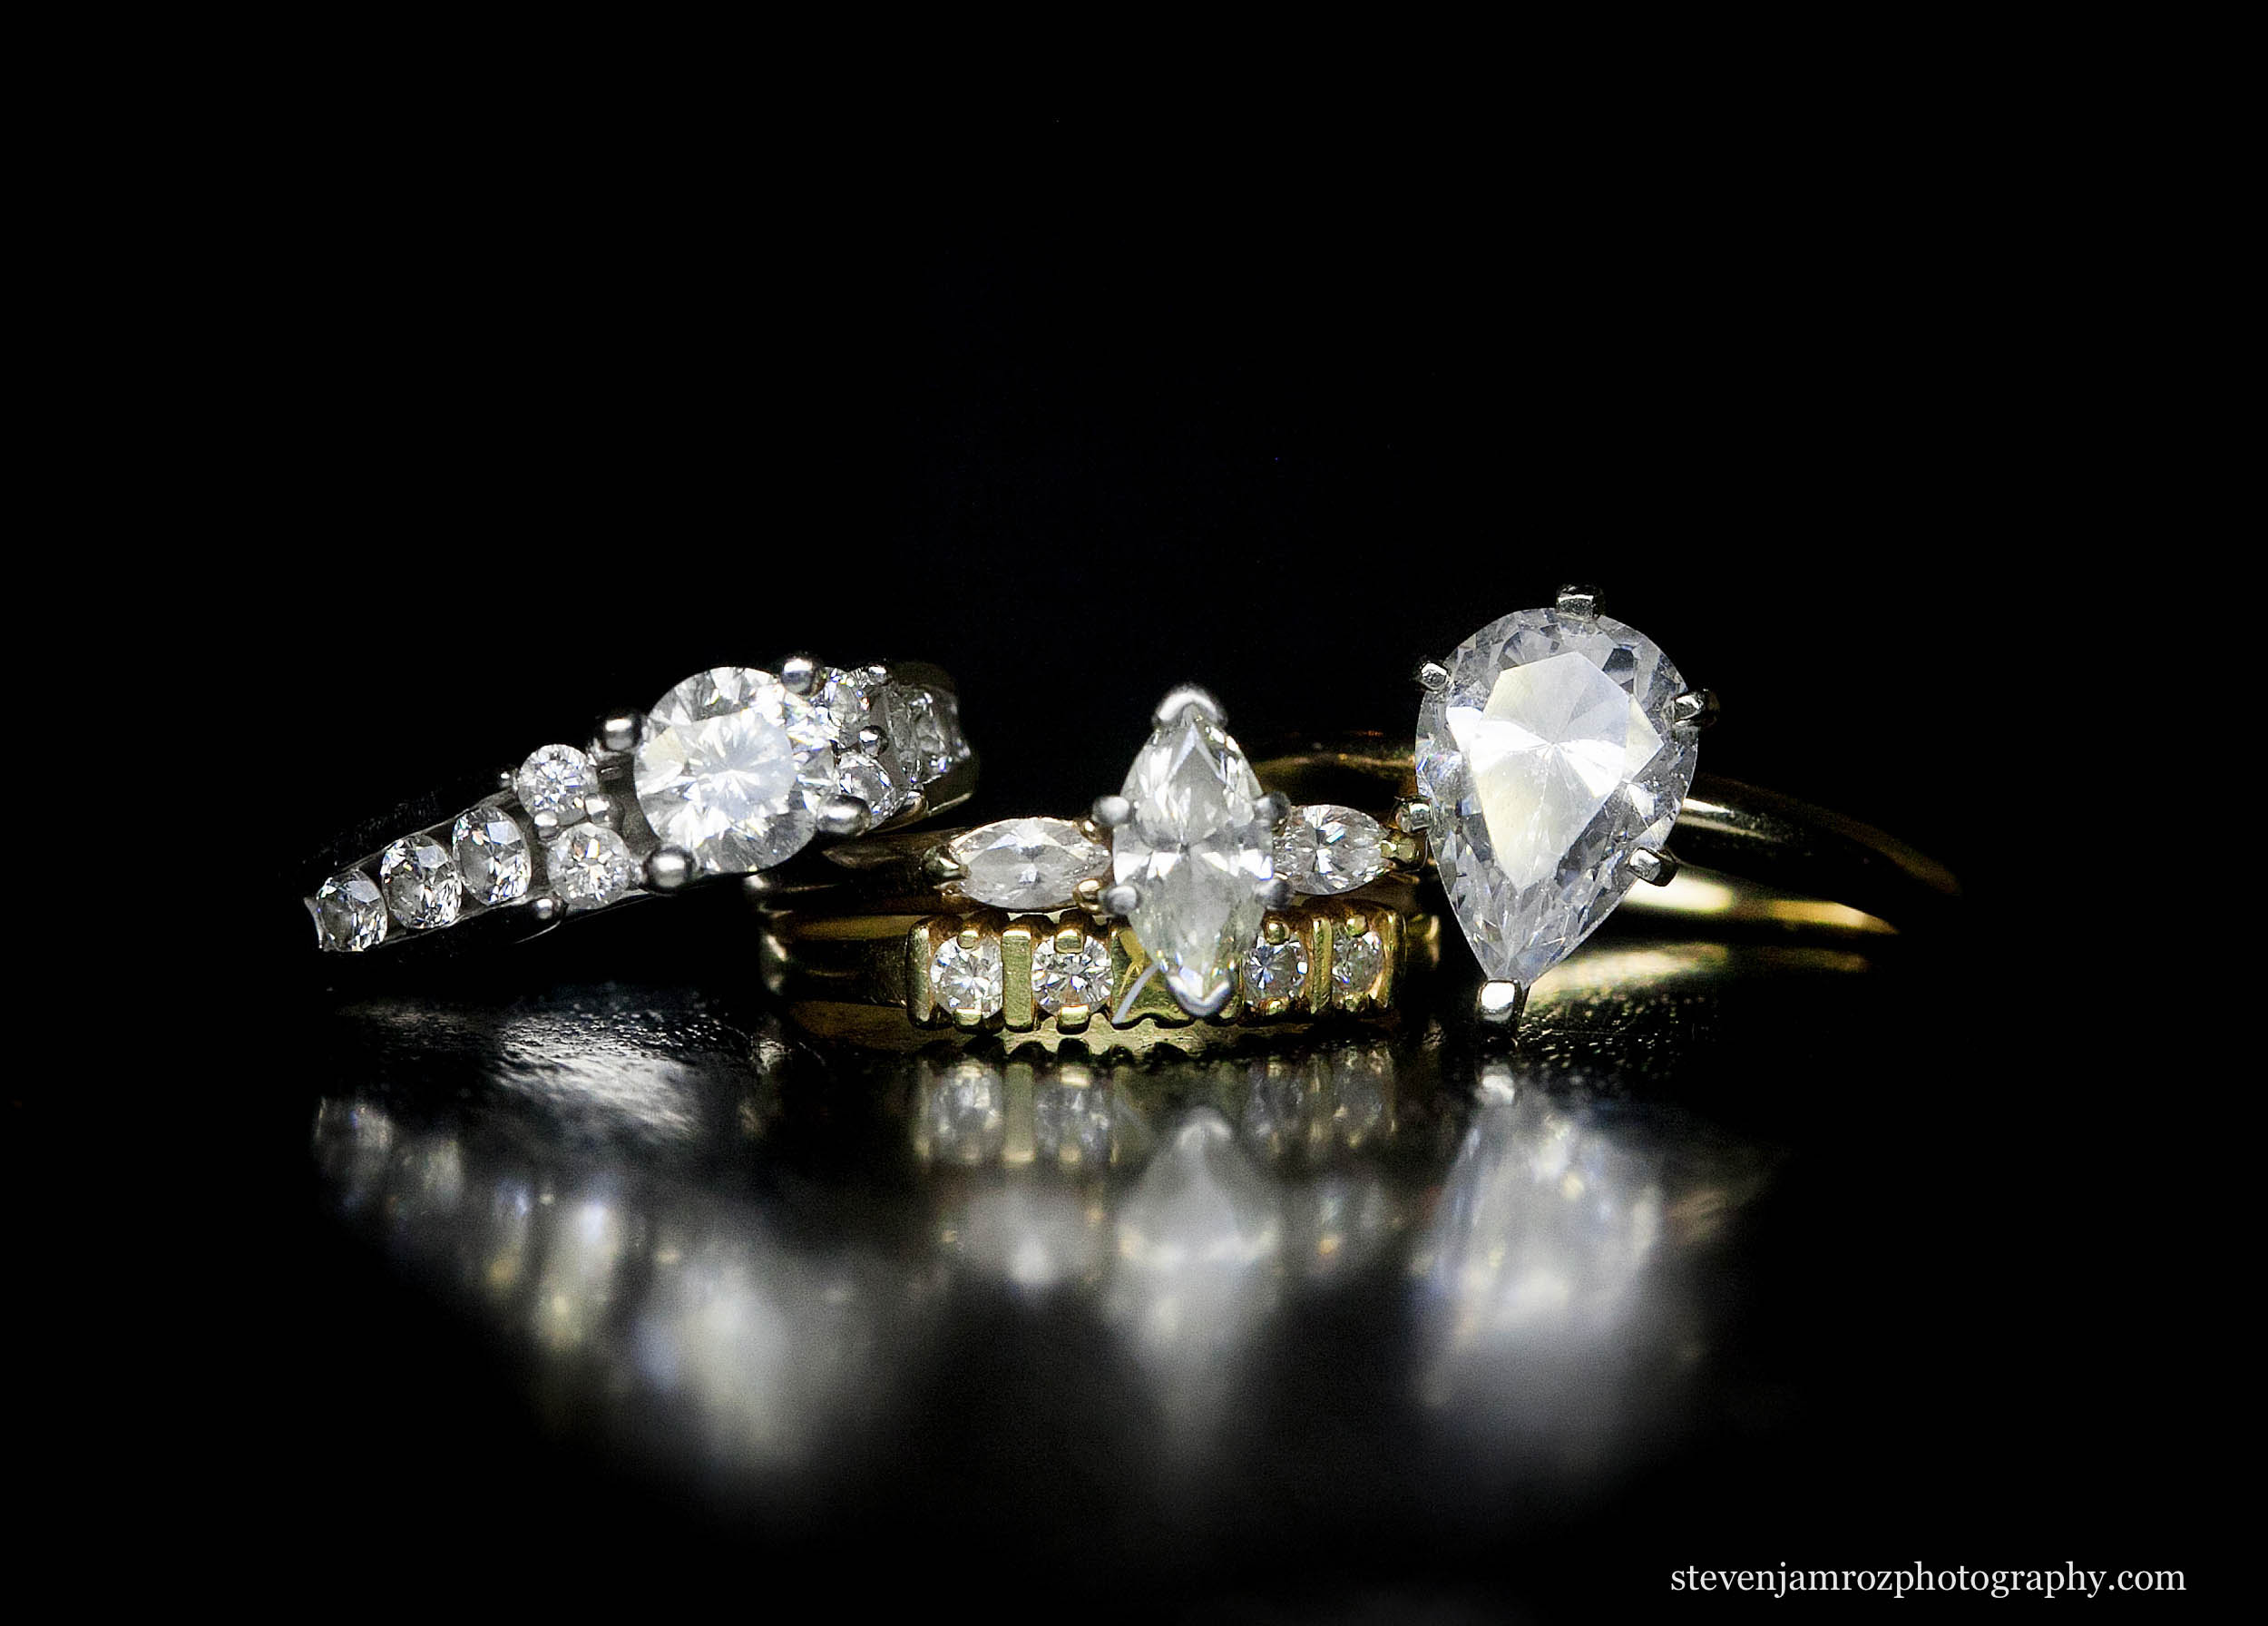 raleigh-wedding-photographer-three-generations-rings-0777.jpg